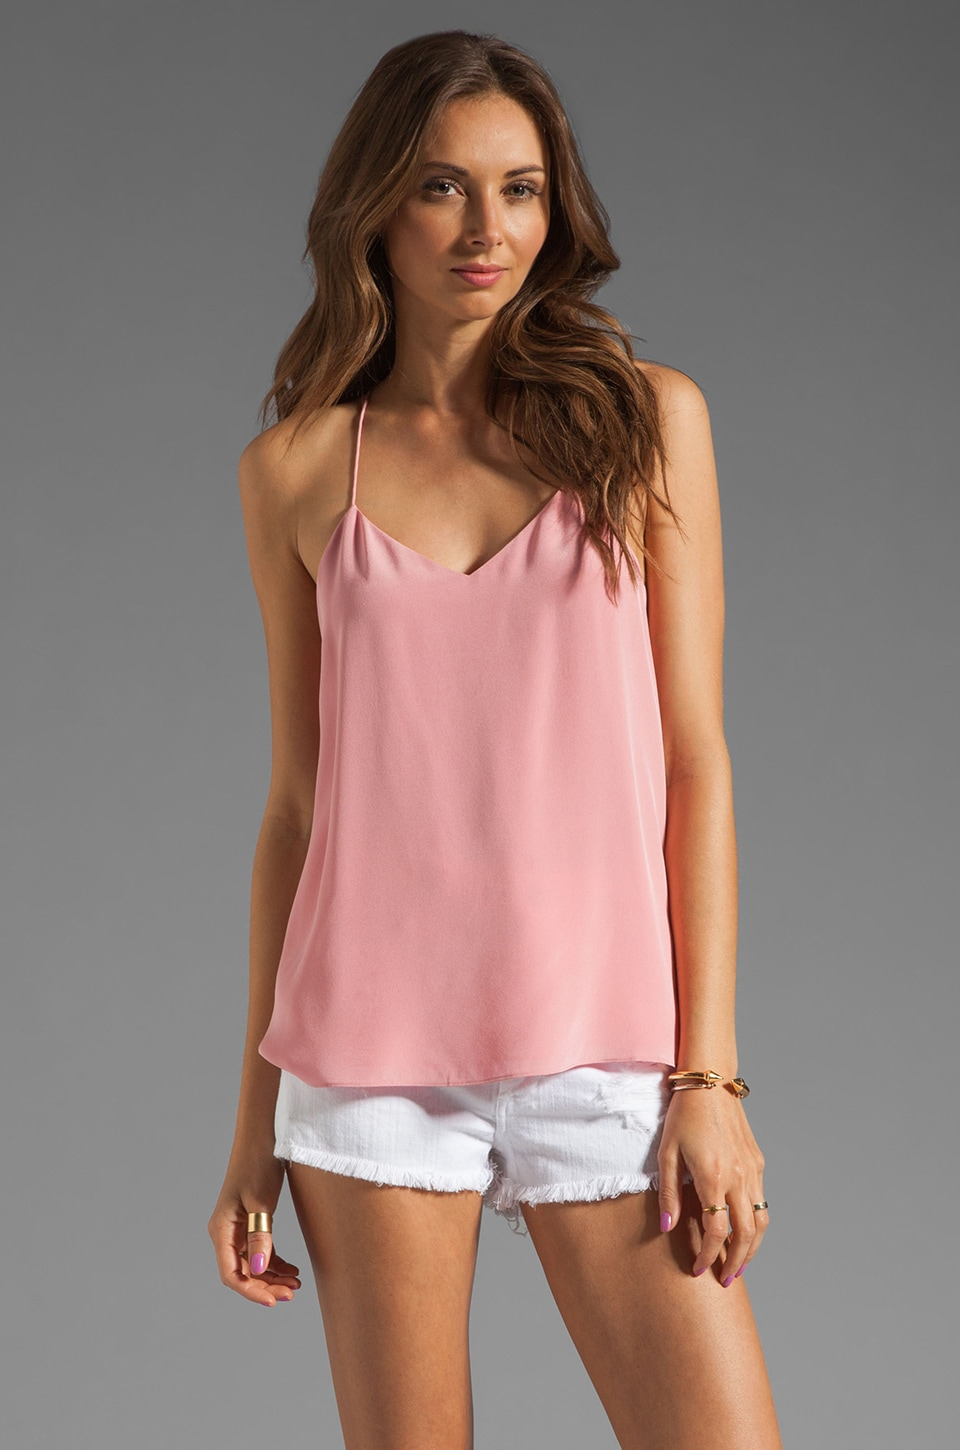 Tibi Silk Cami in Cheek